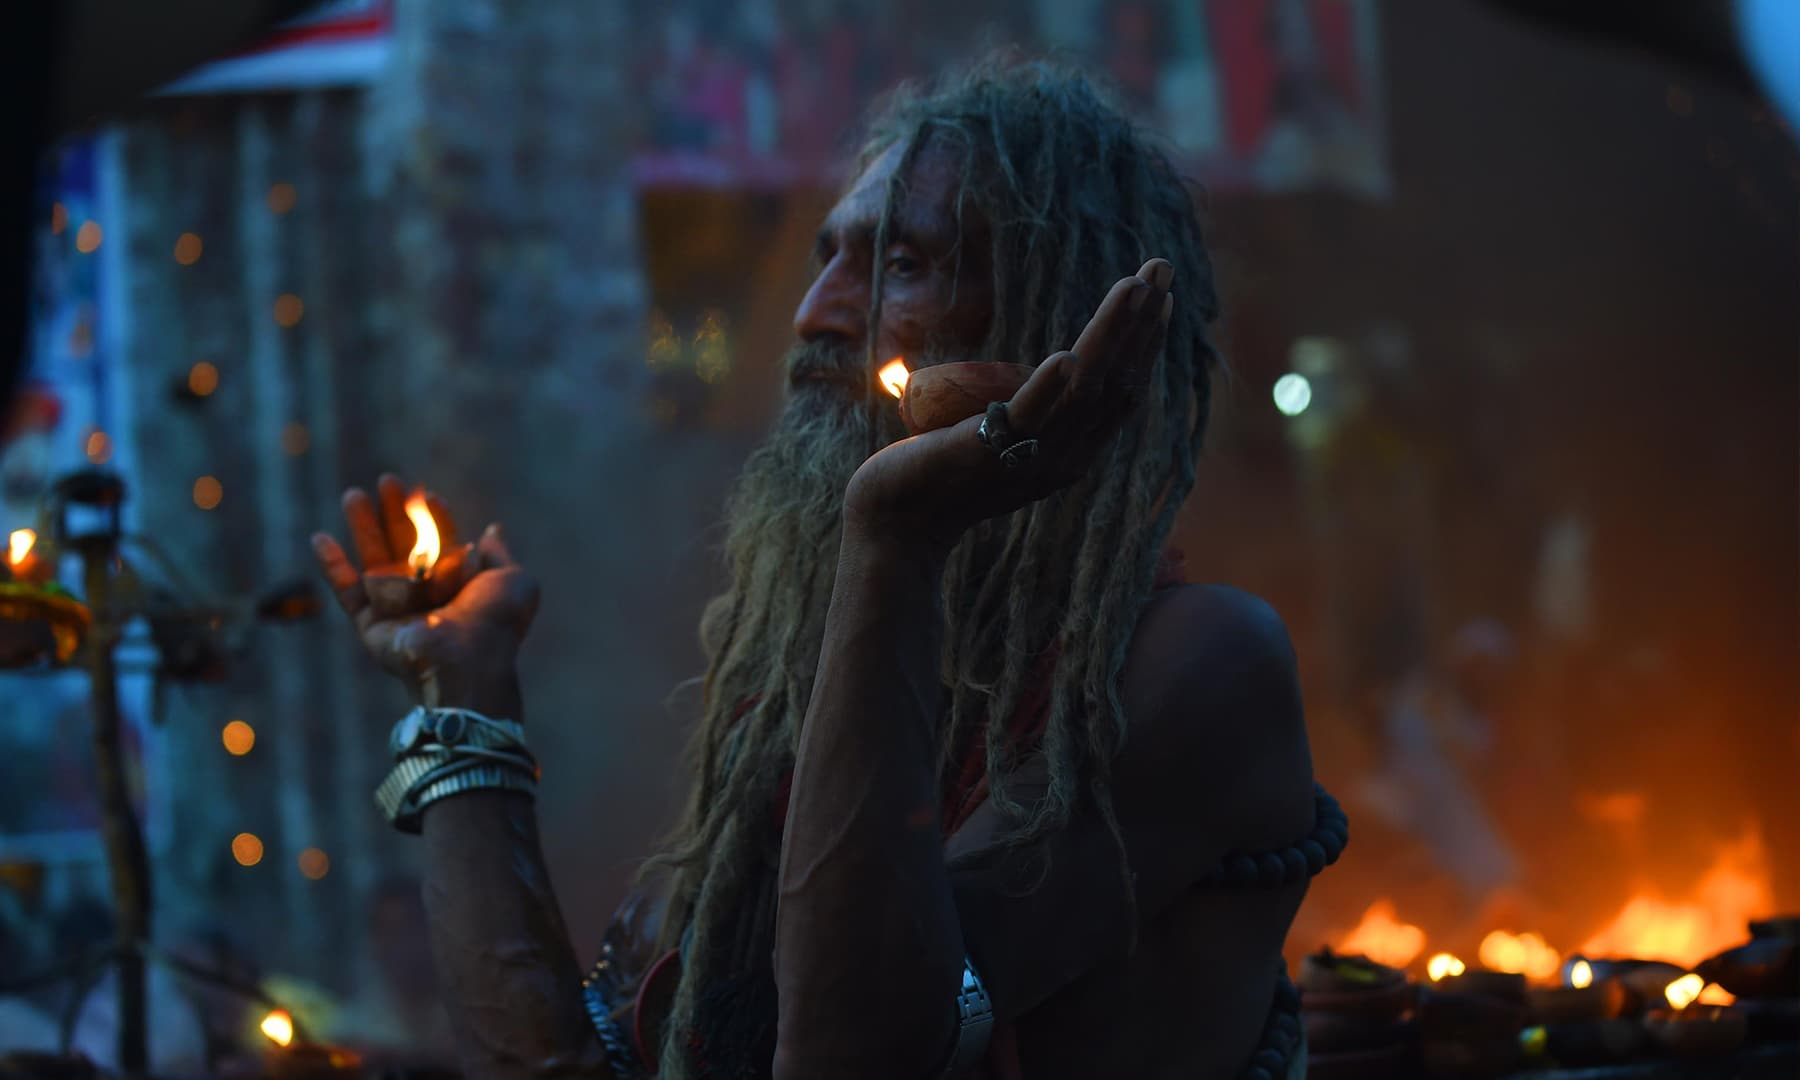 A devotee at Lahore's Mela Chiraghan | M Arif, White Star